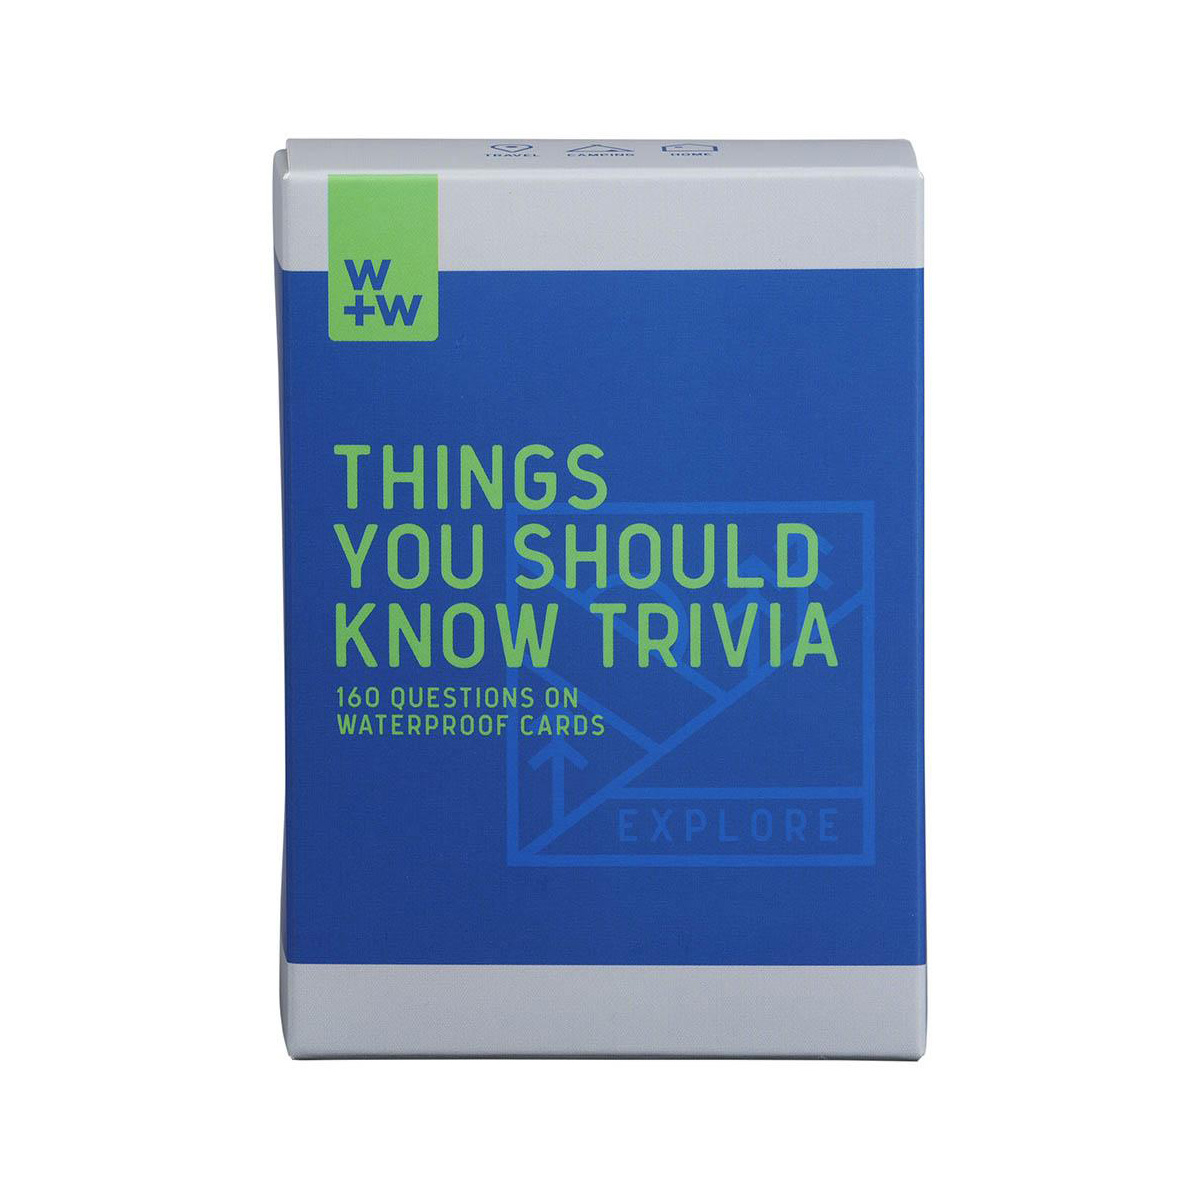 W + W Things You Should Know Trivia Game